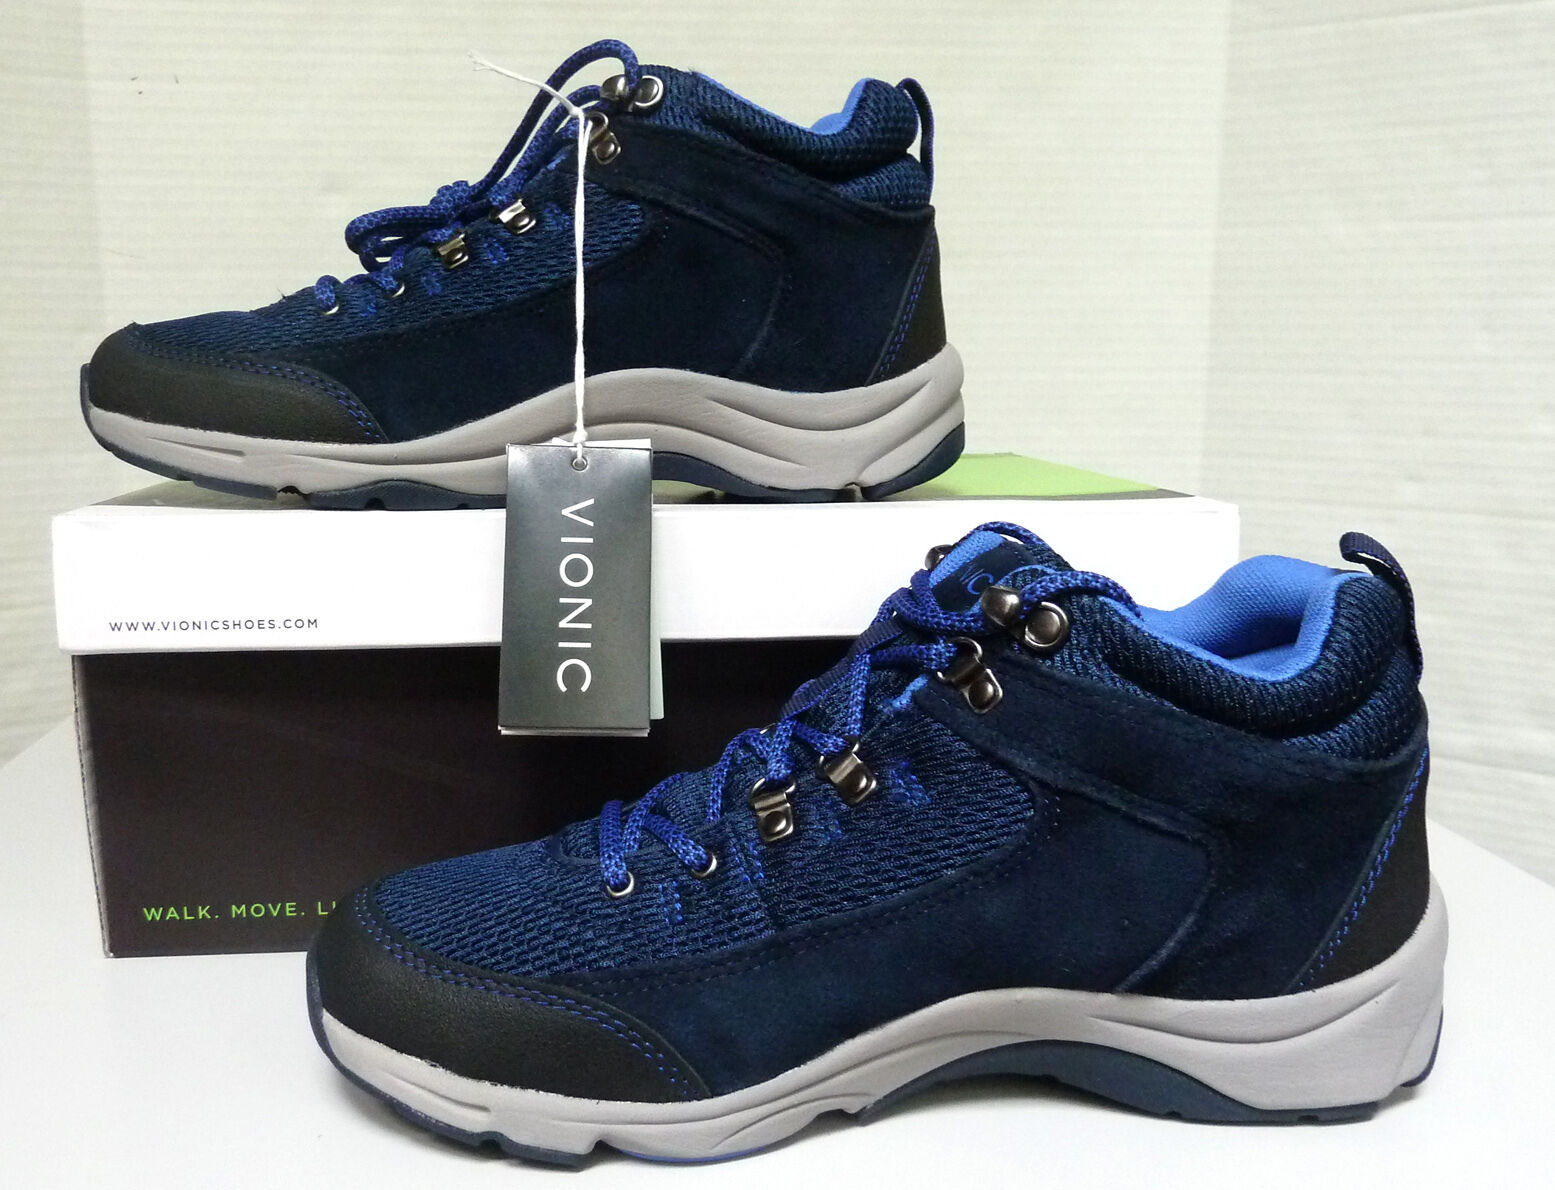 Damens`s Vionic with Walker Orthaheel Technology Cypress Trail Walker with Schuhes Ankle Stiefel b2b8f7